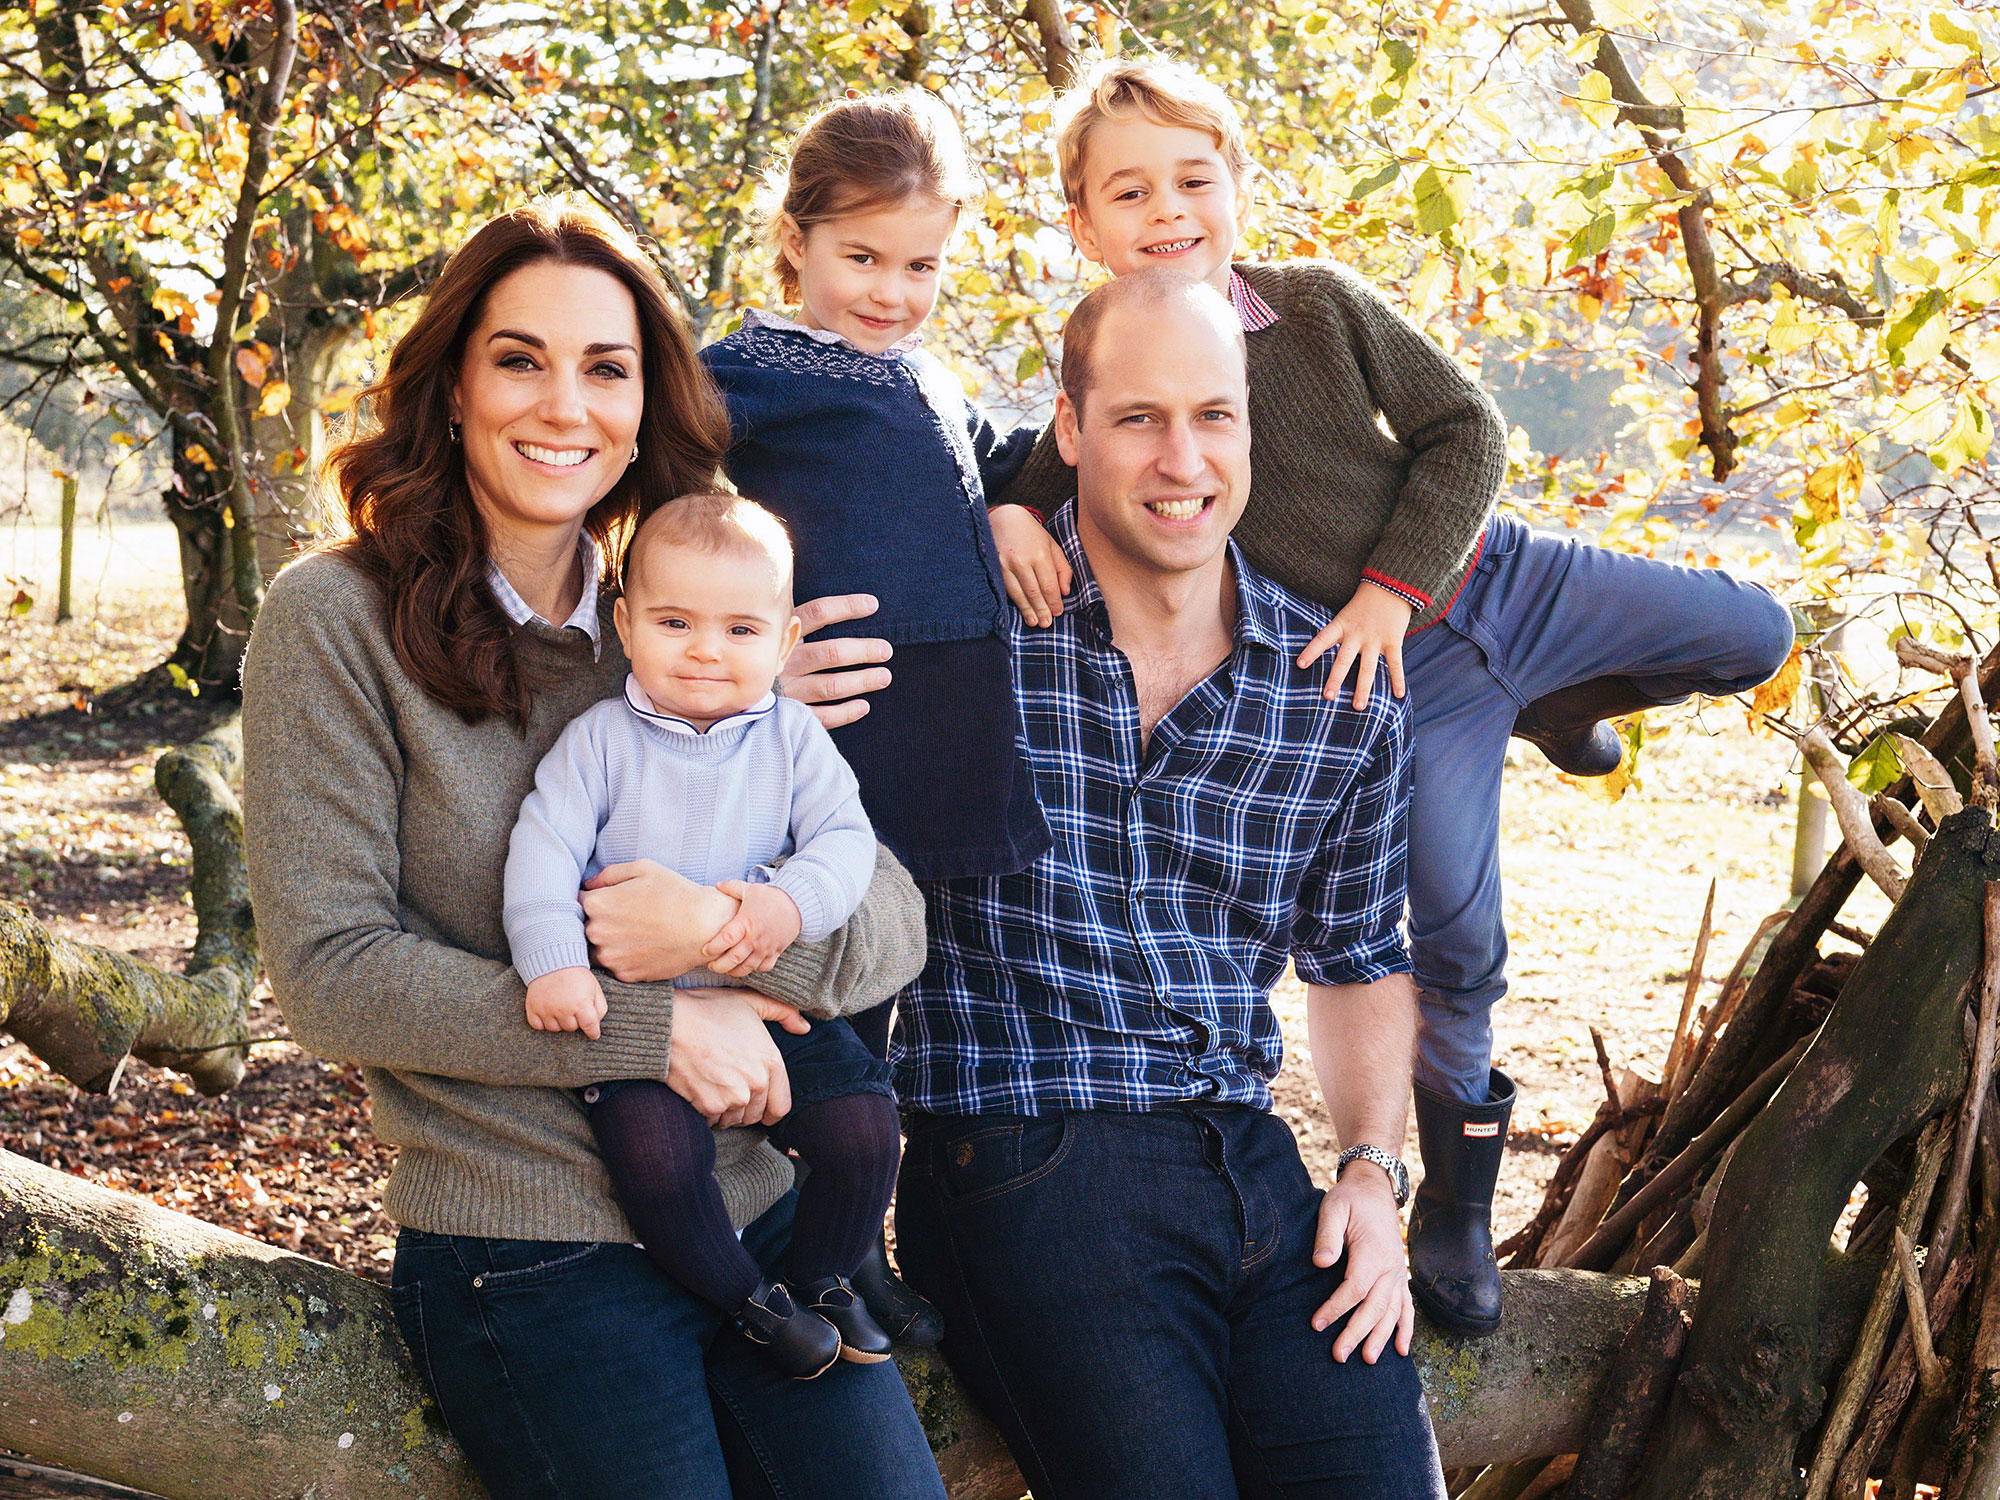 Duchess Kate Prince William Prince Louis Princess Charlotte and Prince George Duchess Kate Entertains the Royal Kids With Baking and Gardening Amid Quarantine